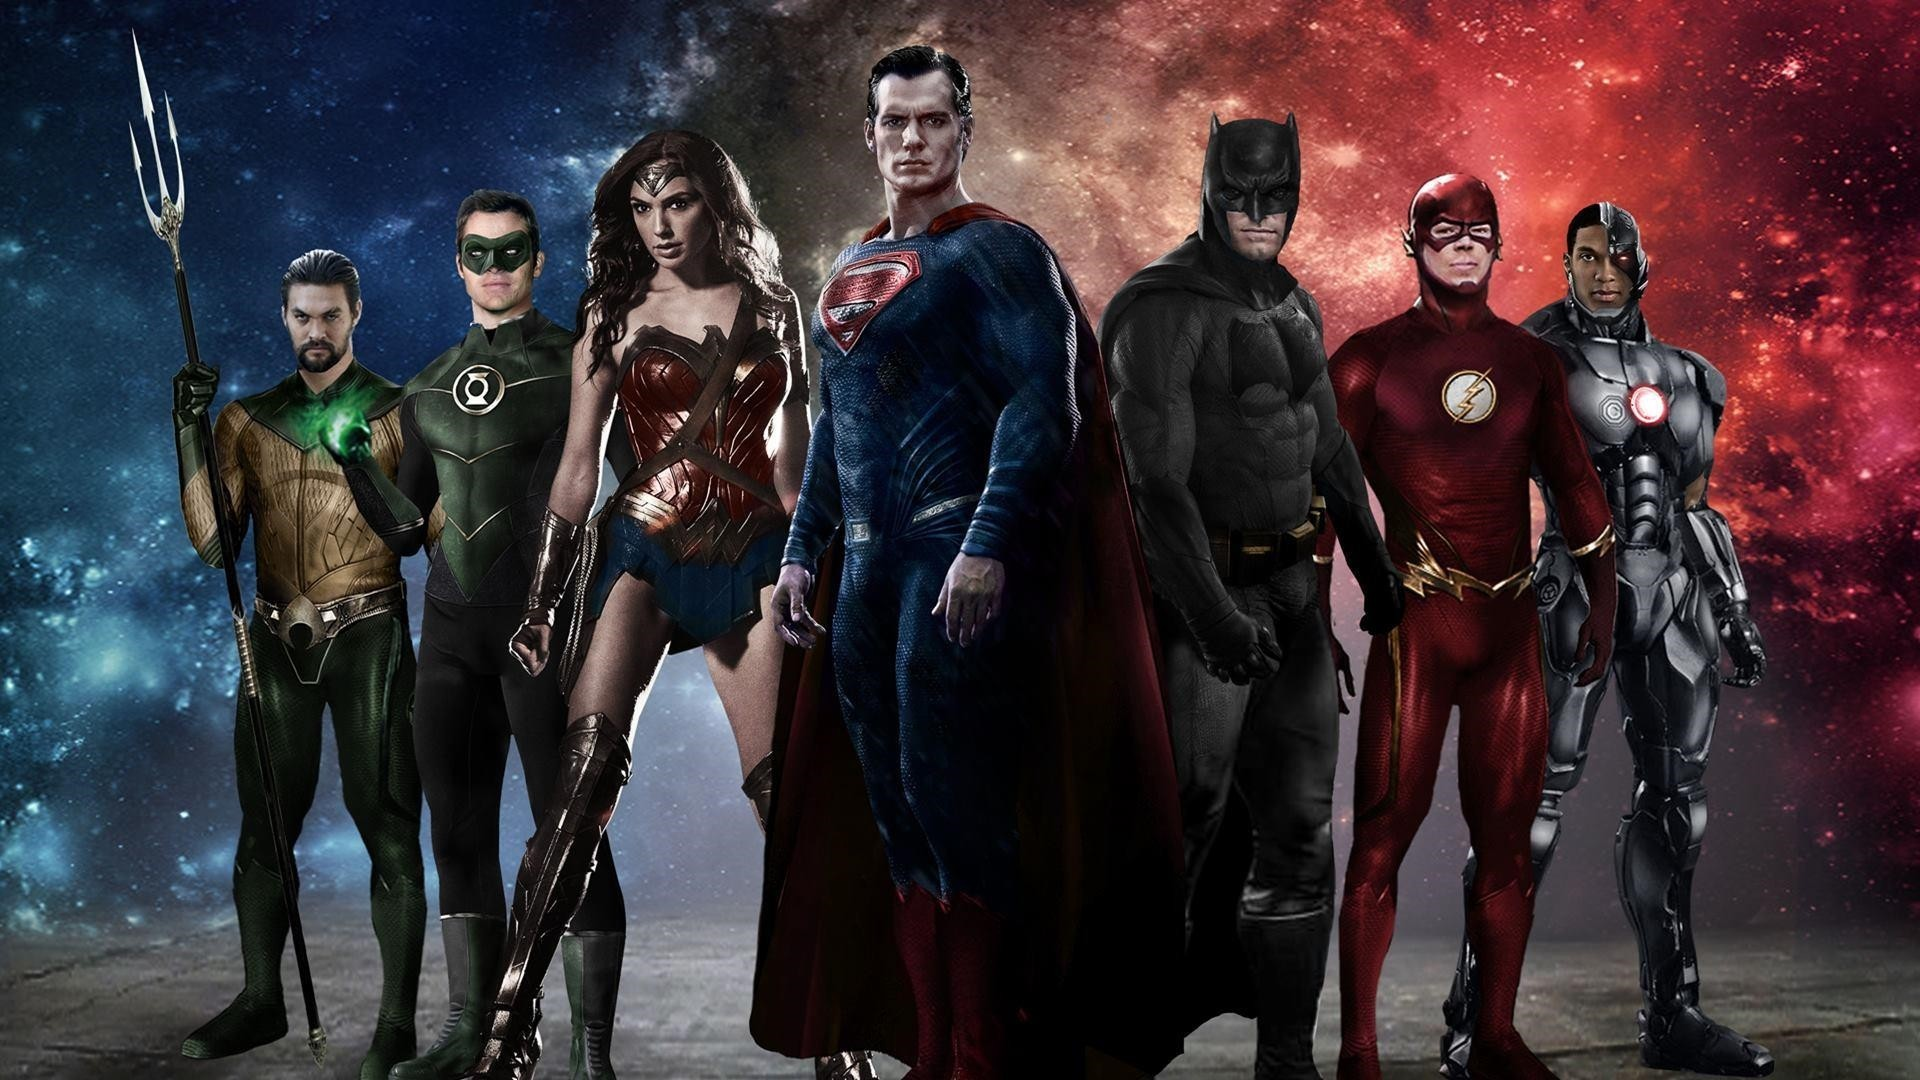 Justice League Poster wallpaper for computer